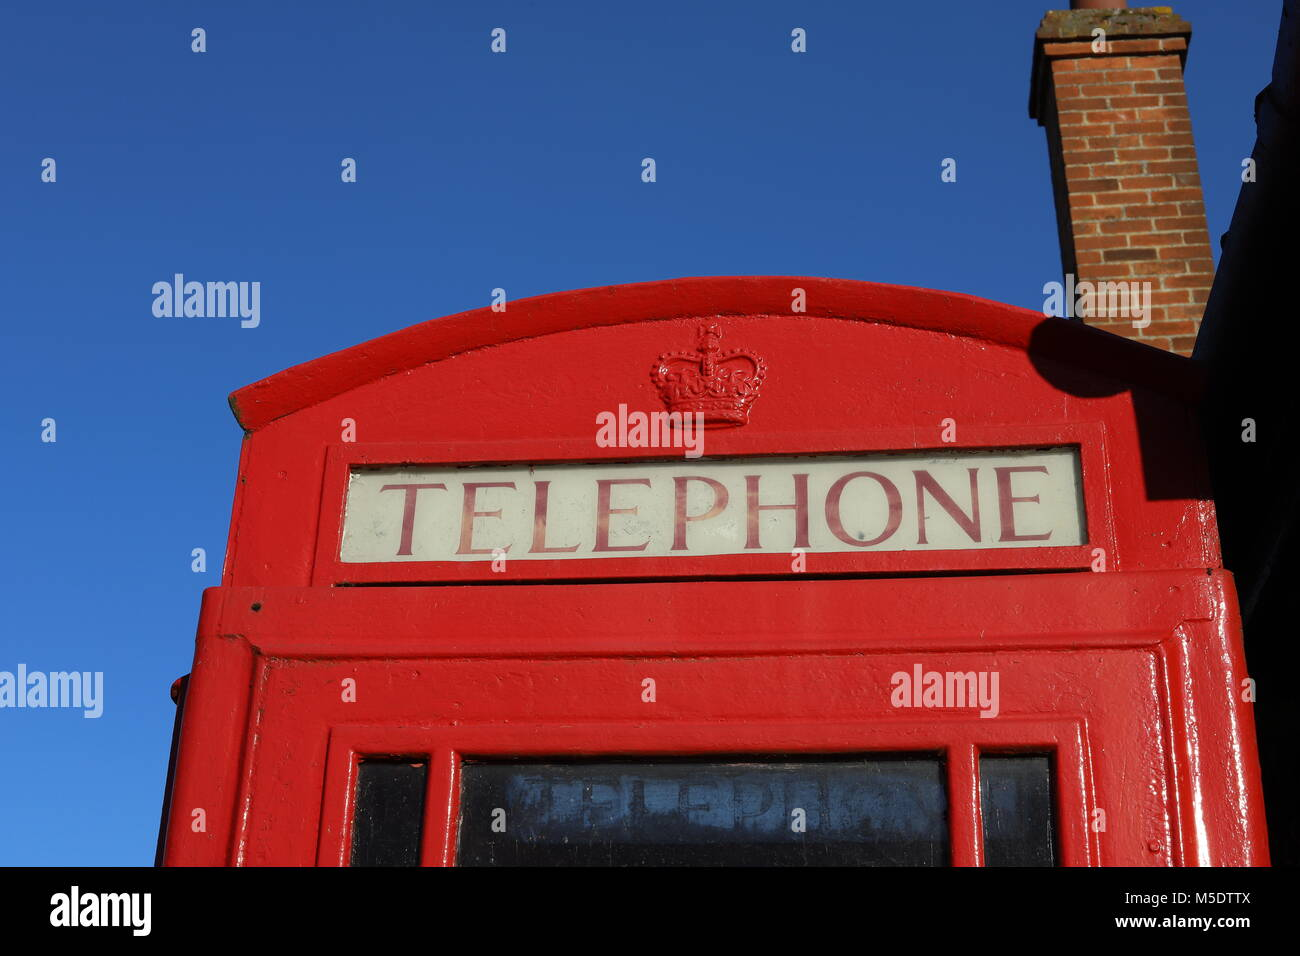 Old red post office / BT telephone box outside The Maybush pub in Waldringfield, Suffolk. - Stock Image